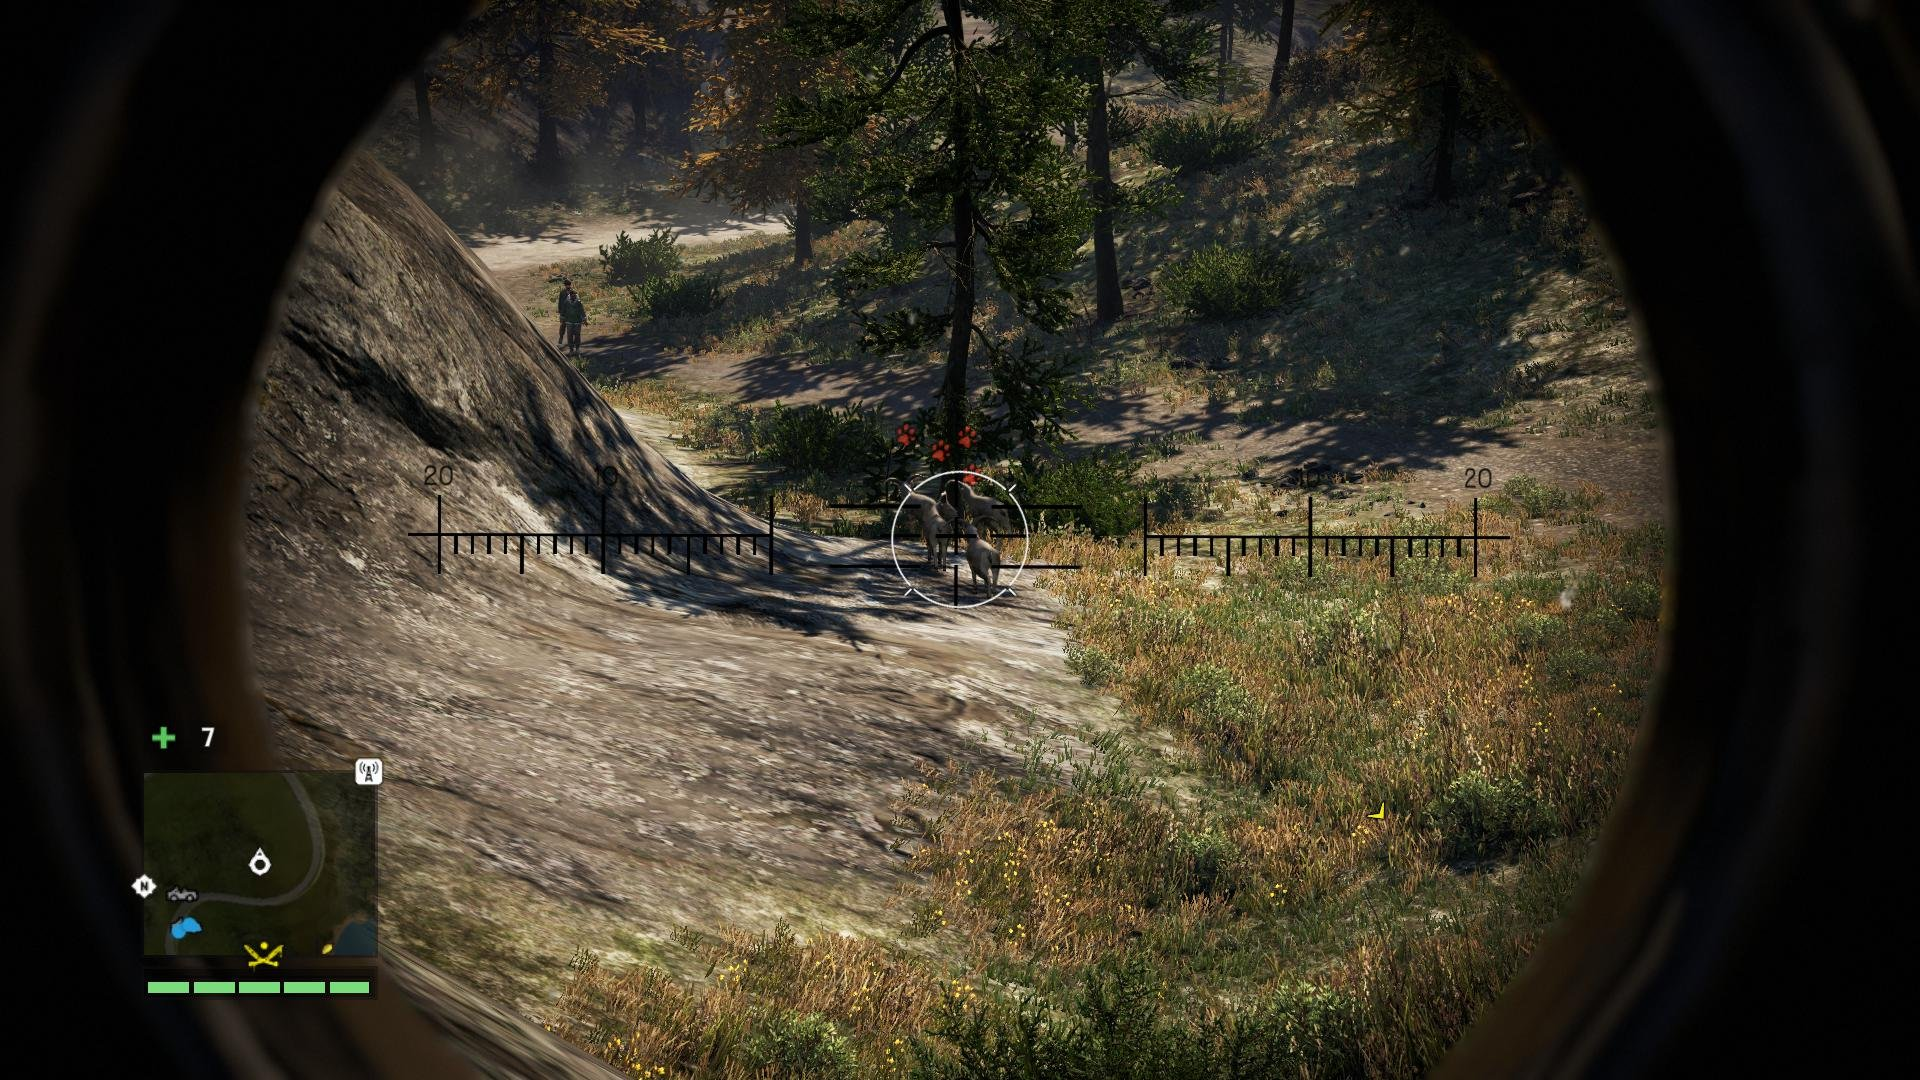 Far  Cry 4 - Page 2 A2fed94a-b583-4580-bec2-f153252d8d2d